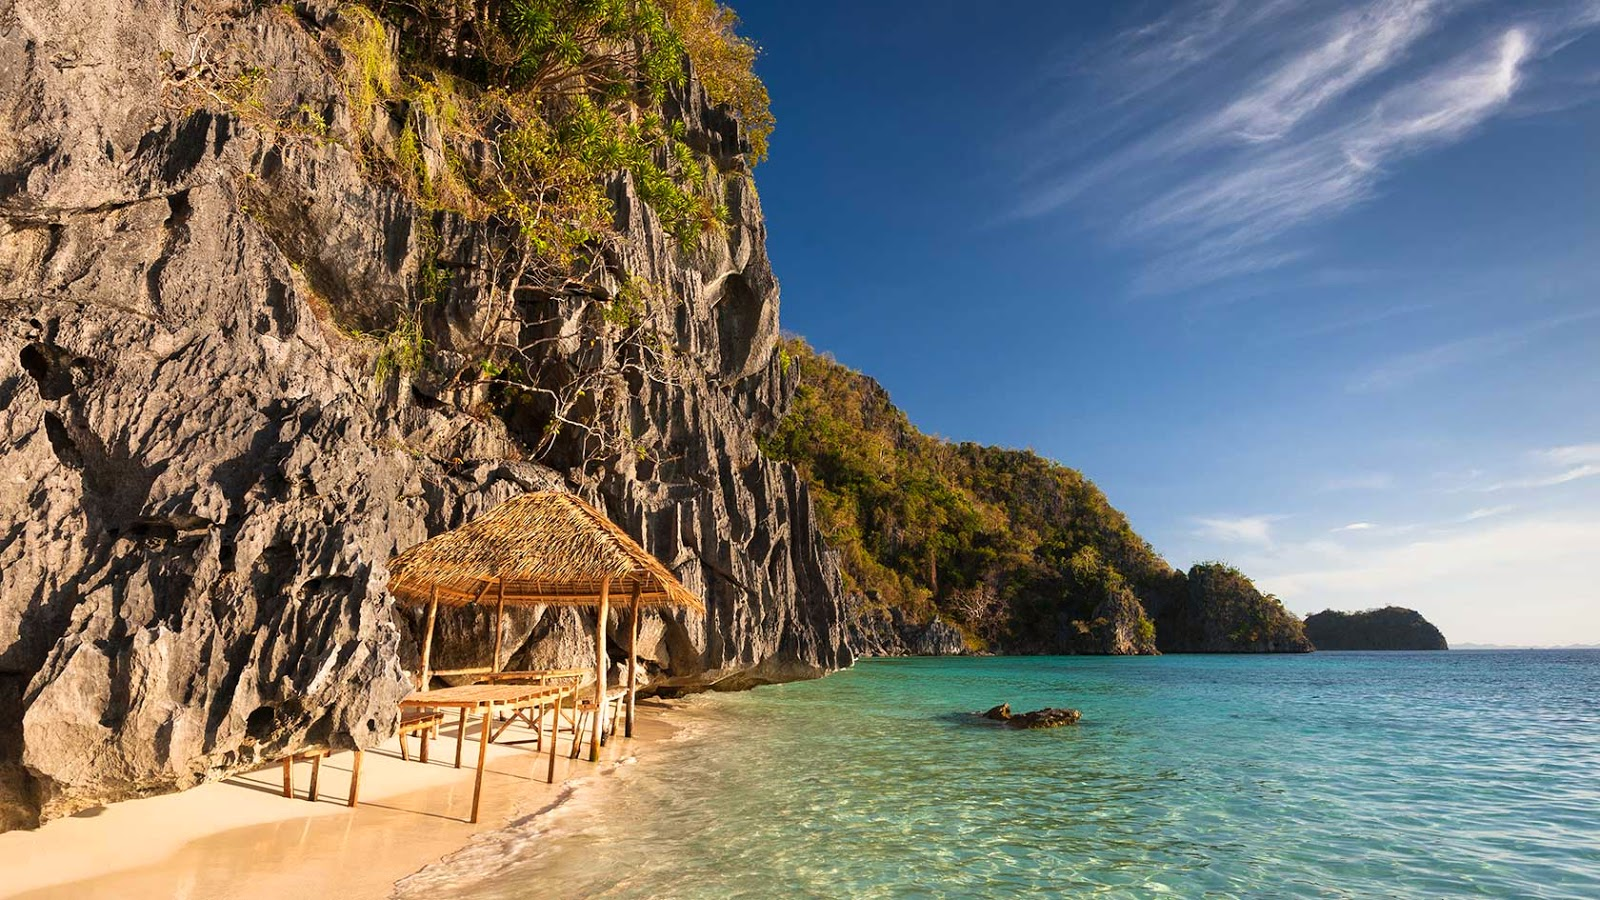 The Philippine Tourist Attractions